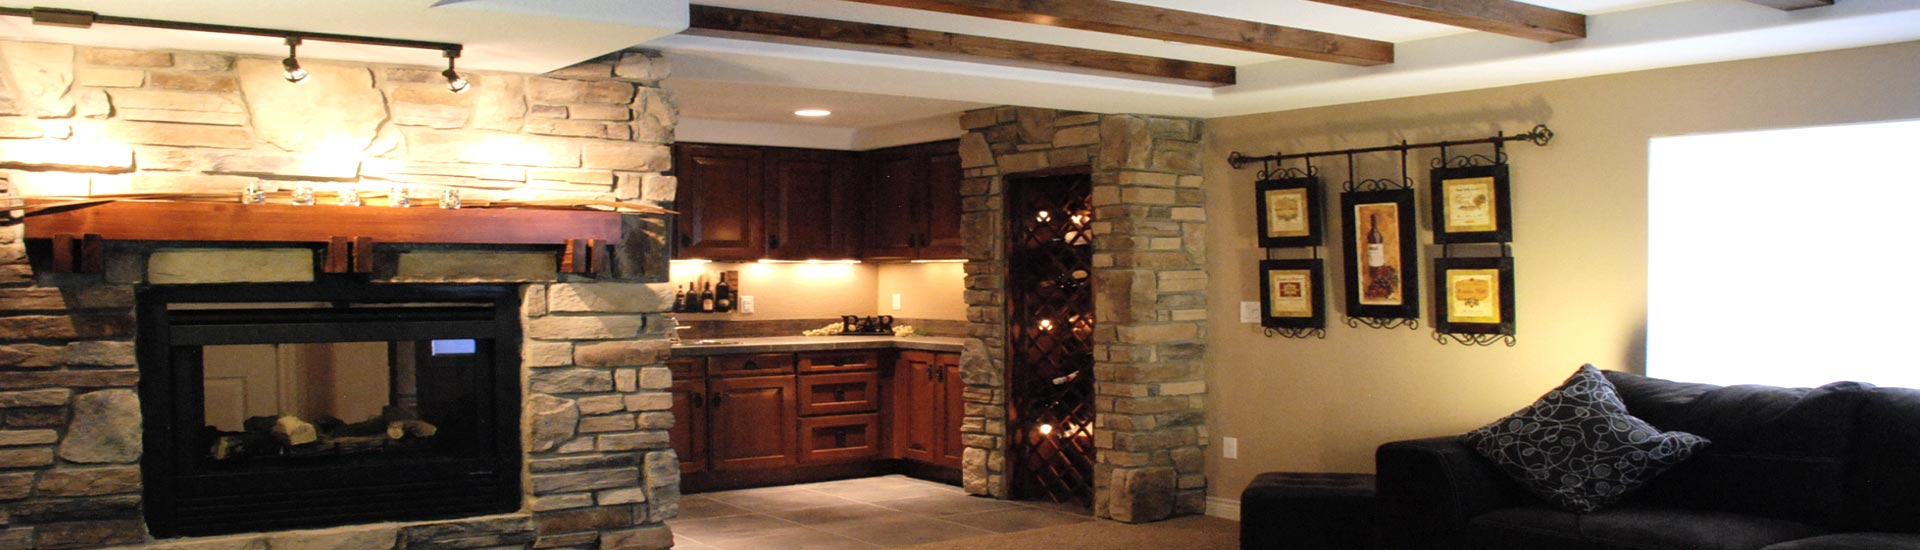 Make your basement an extension of your home.